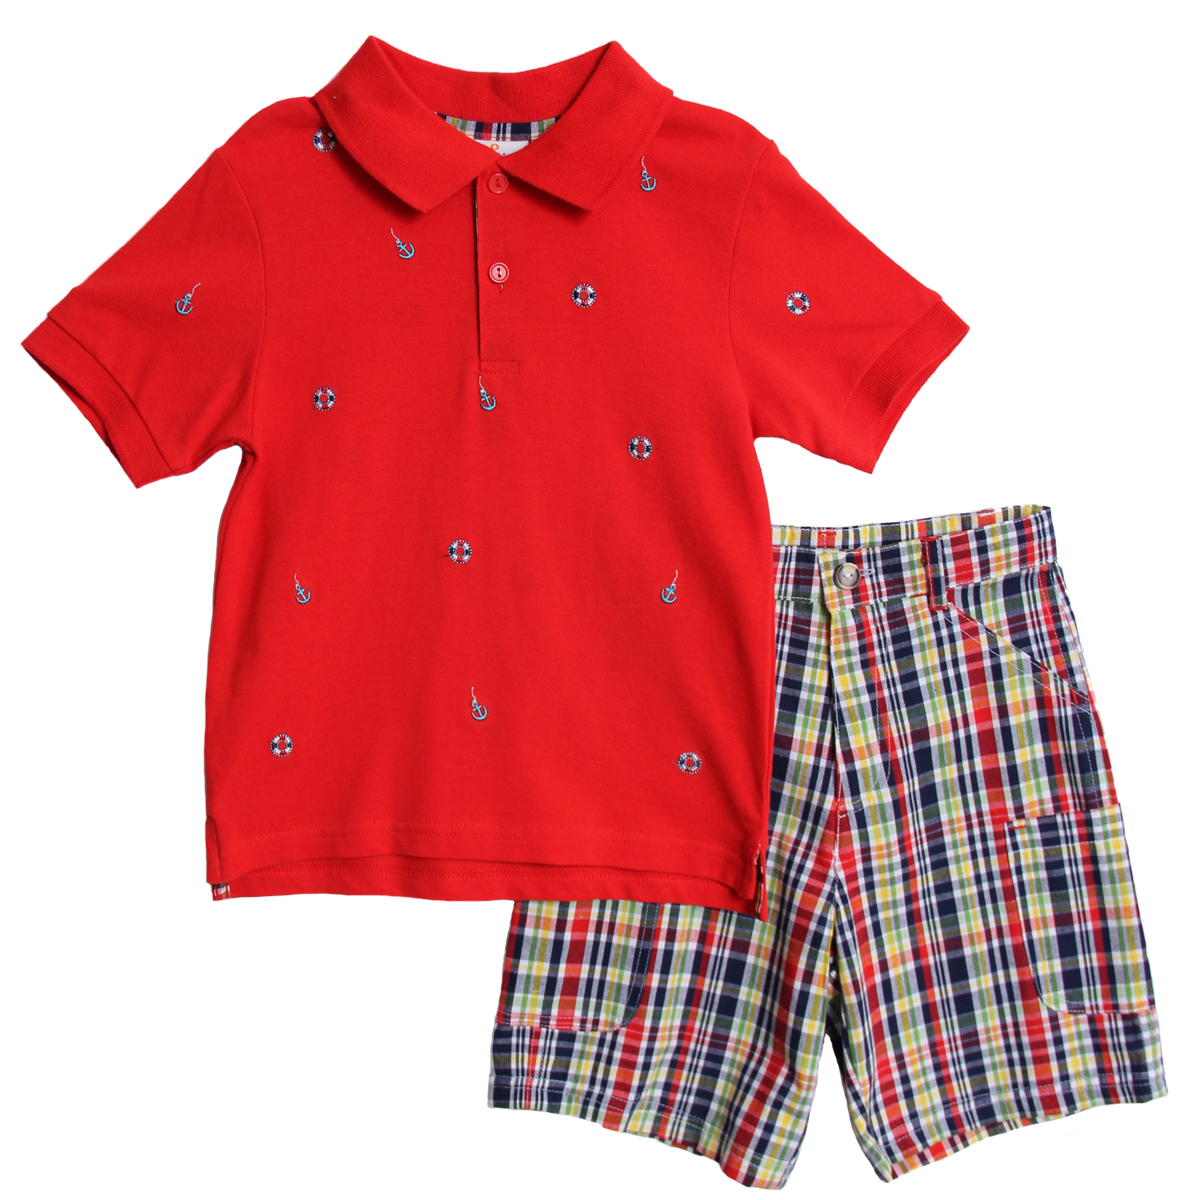 B. T. Kids Boys (4-7) 2pc red polo/colorful plaid shorts set - set sail at Sears.com